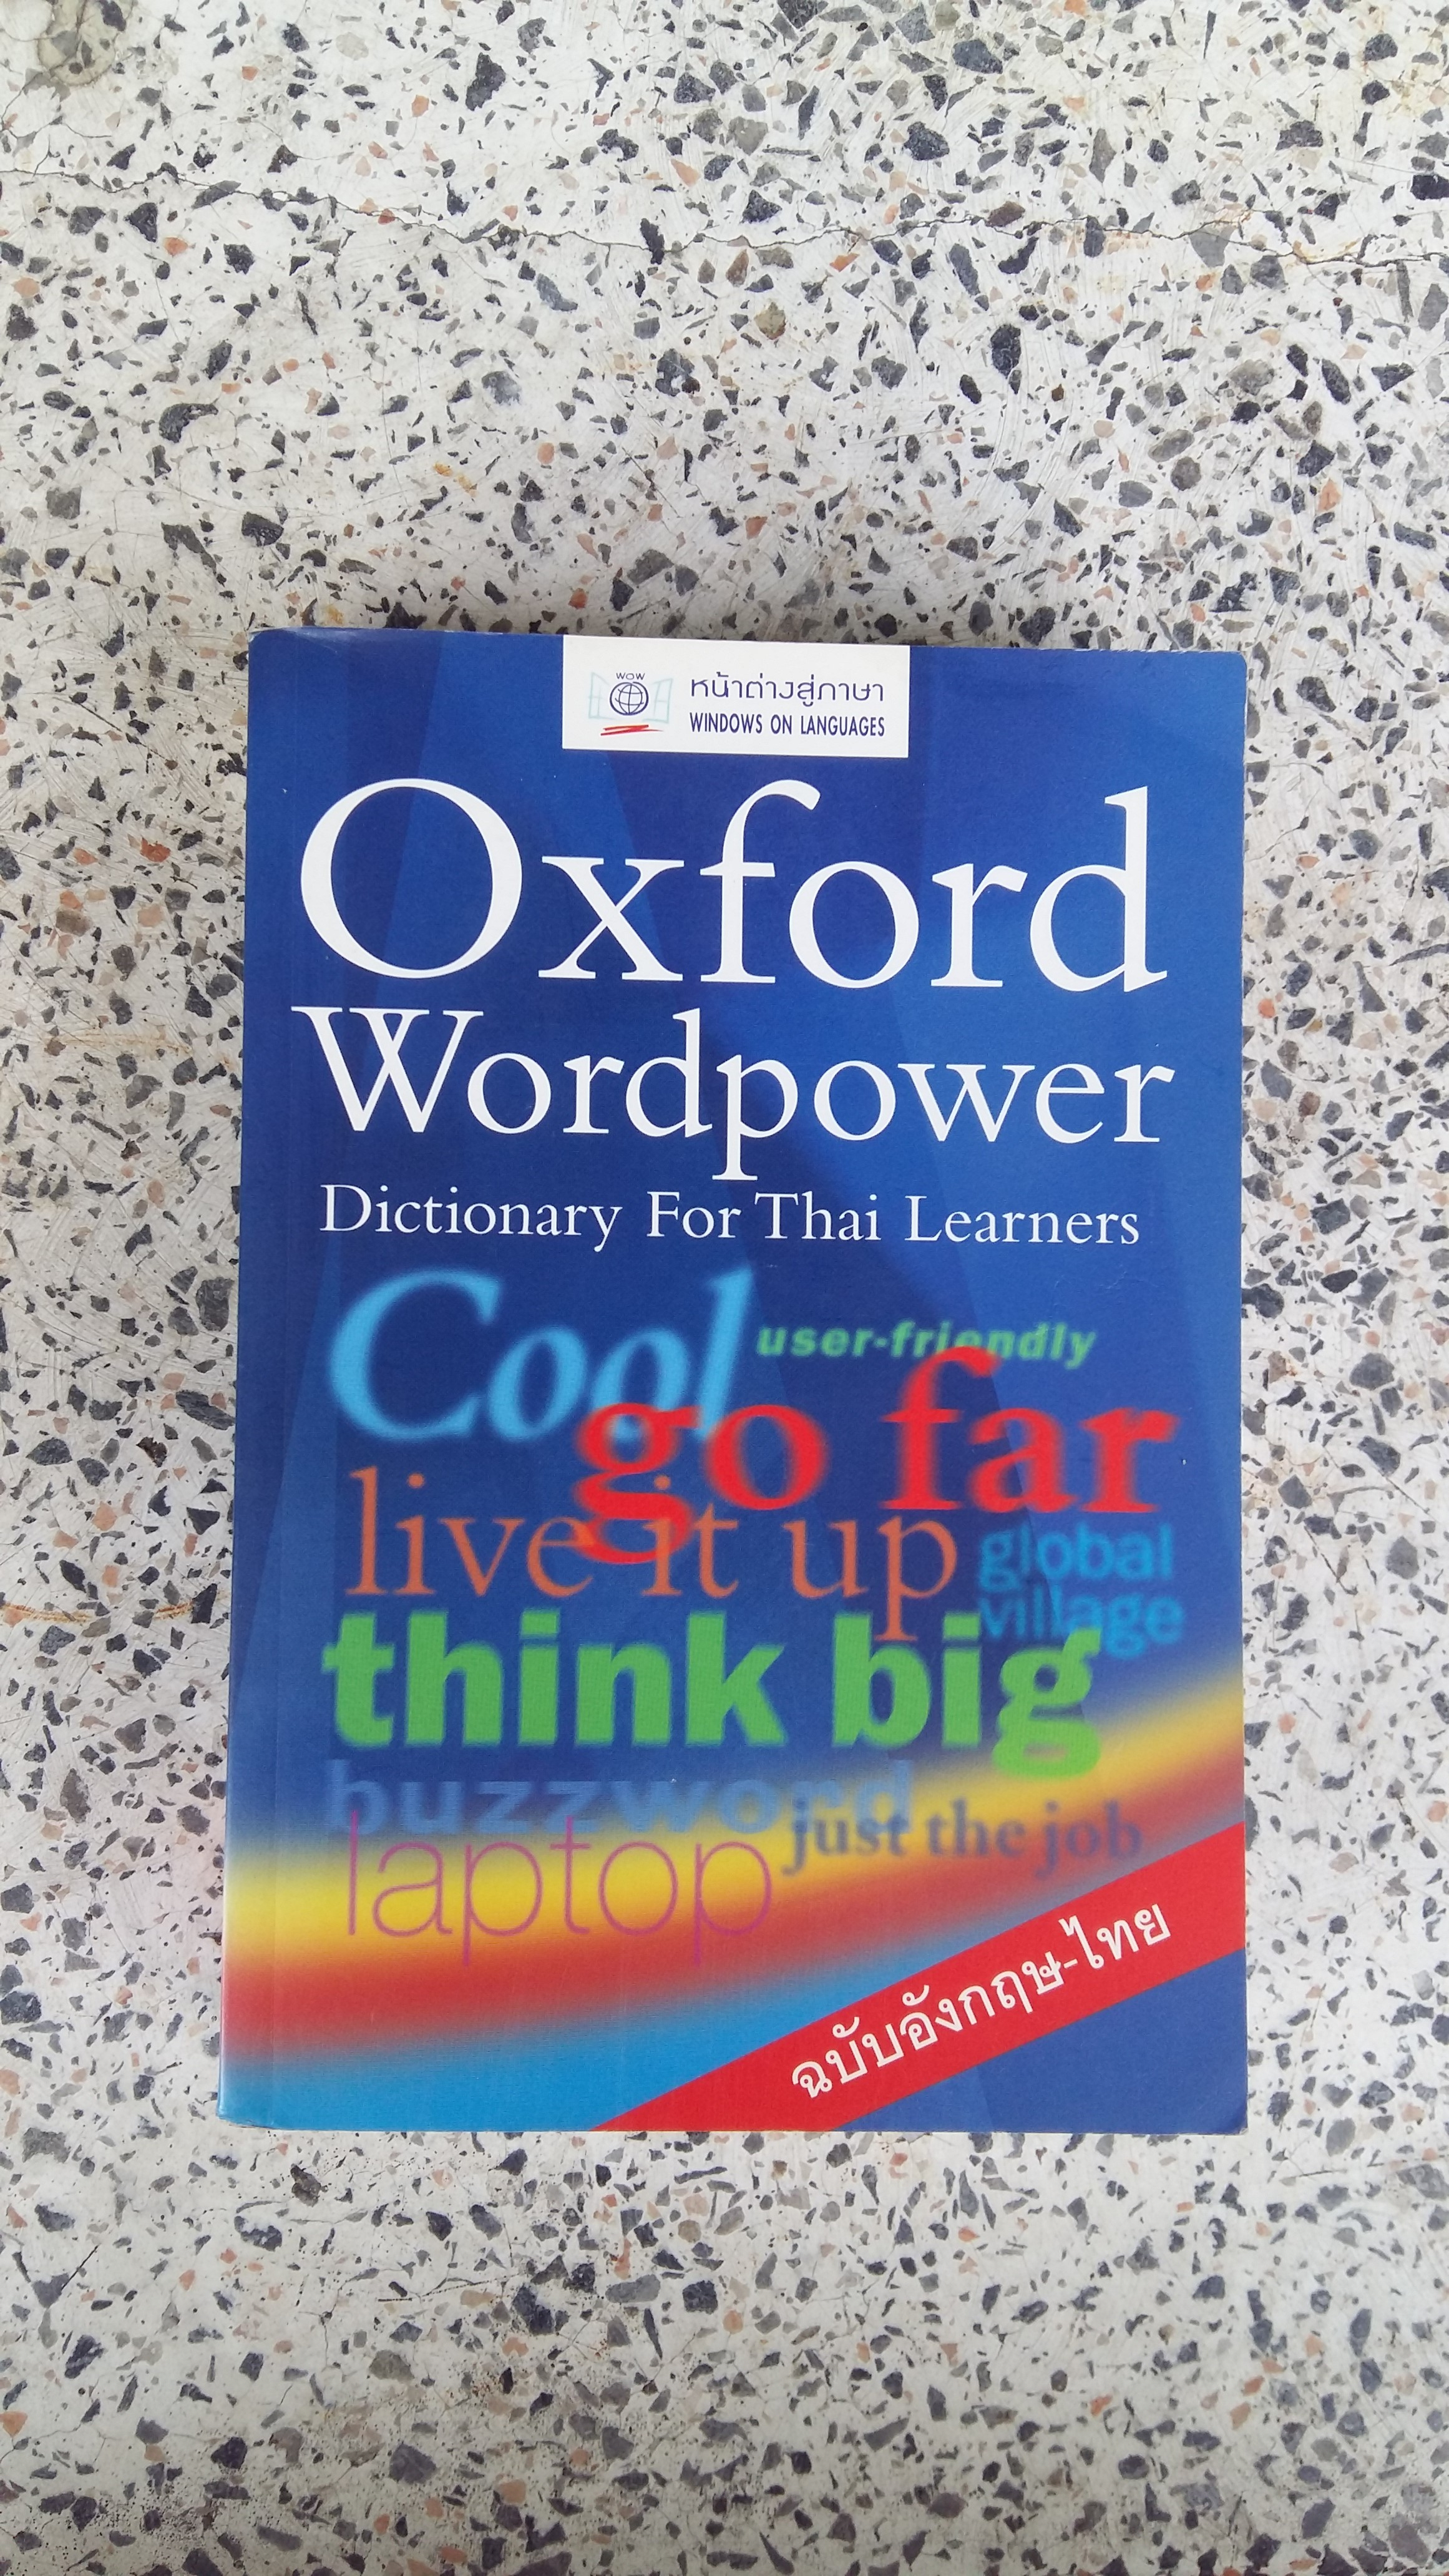 Oxford Wordpower Dictionary For Thai Learners / อังกฤษ-ไทย